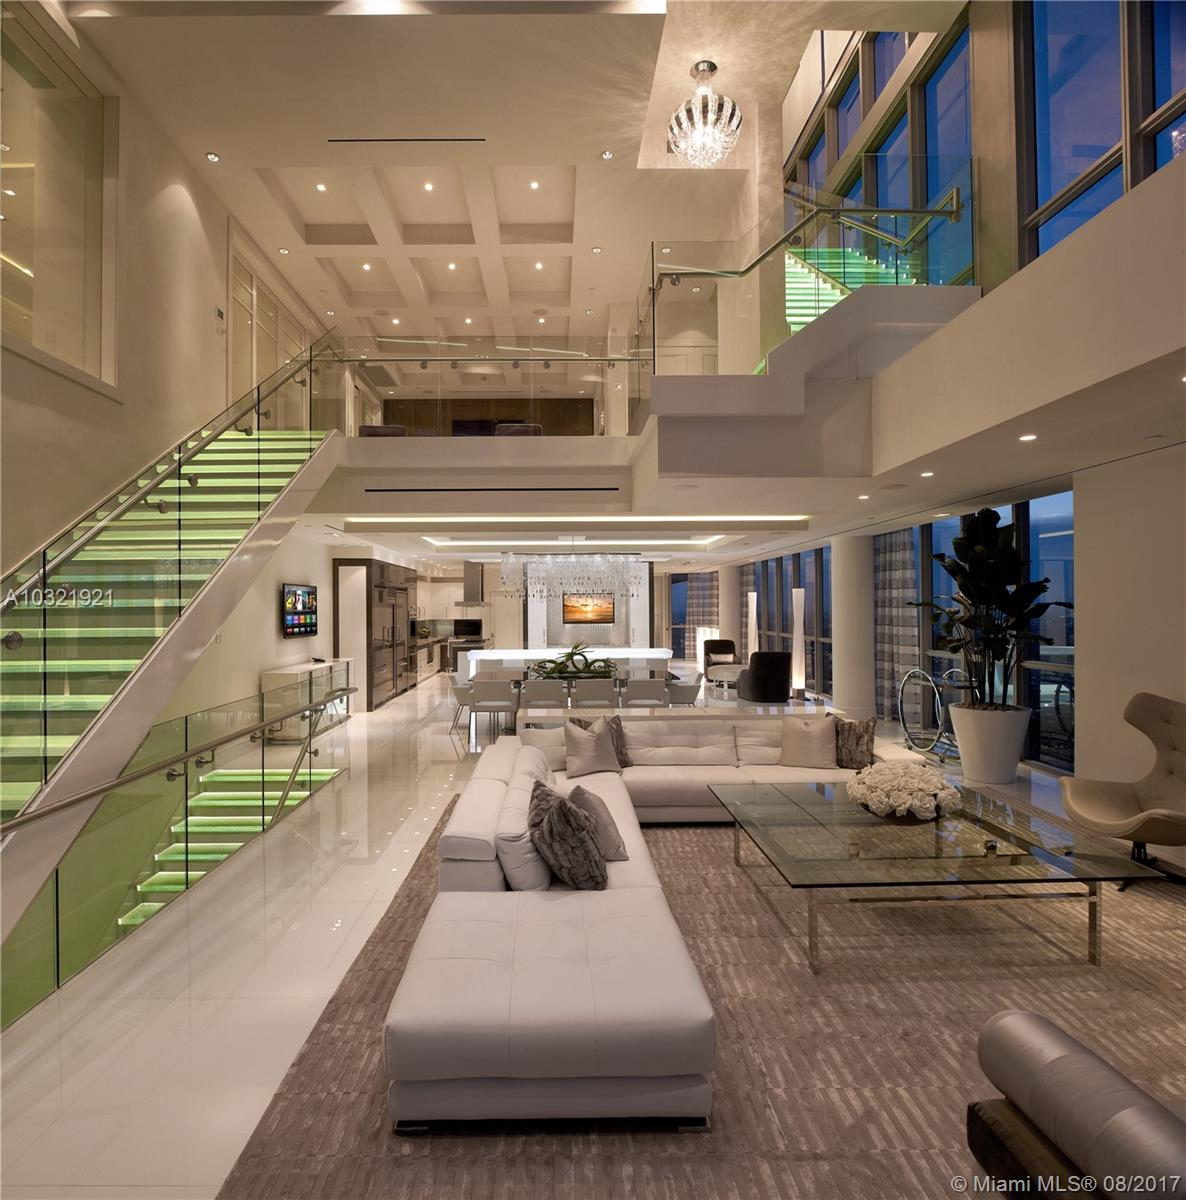 Buying Modular Homes Four Story Marquis Penthouse With Rooftop Pool Seeks 13 9m